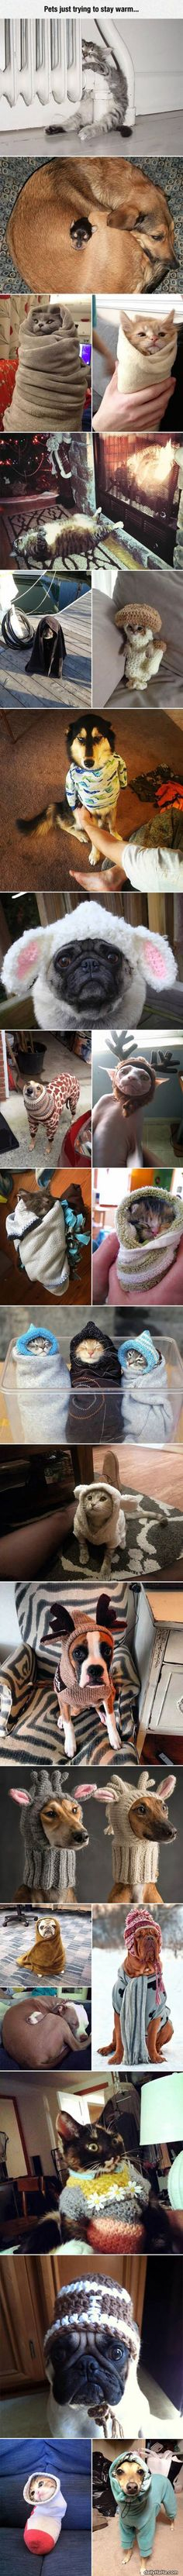 Pets Staying Warm -  Here is an awesome compilation of pets finding a warm place. Dailyhaha is your daily dose of laughs!